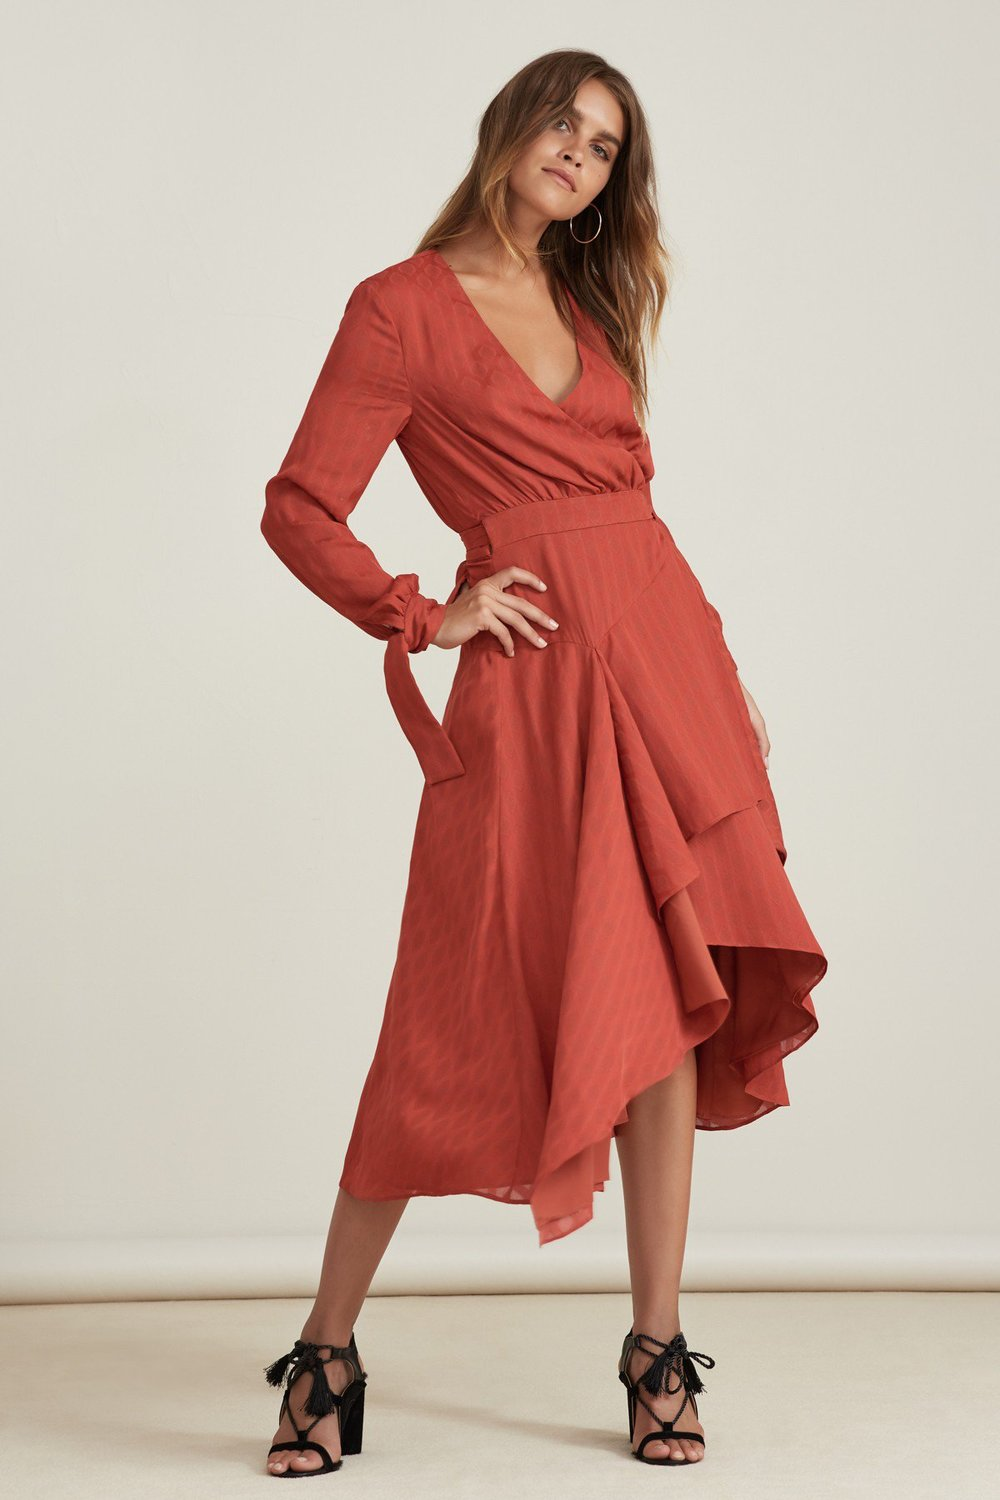 Shop Finders Keepers Foundations Midi Dress.